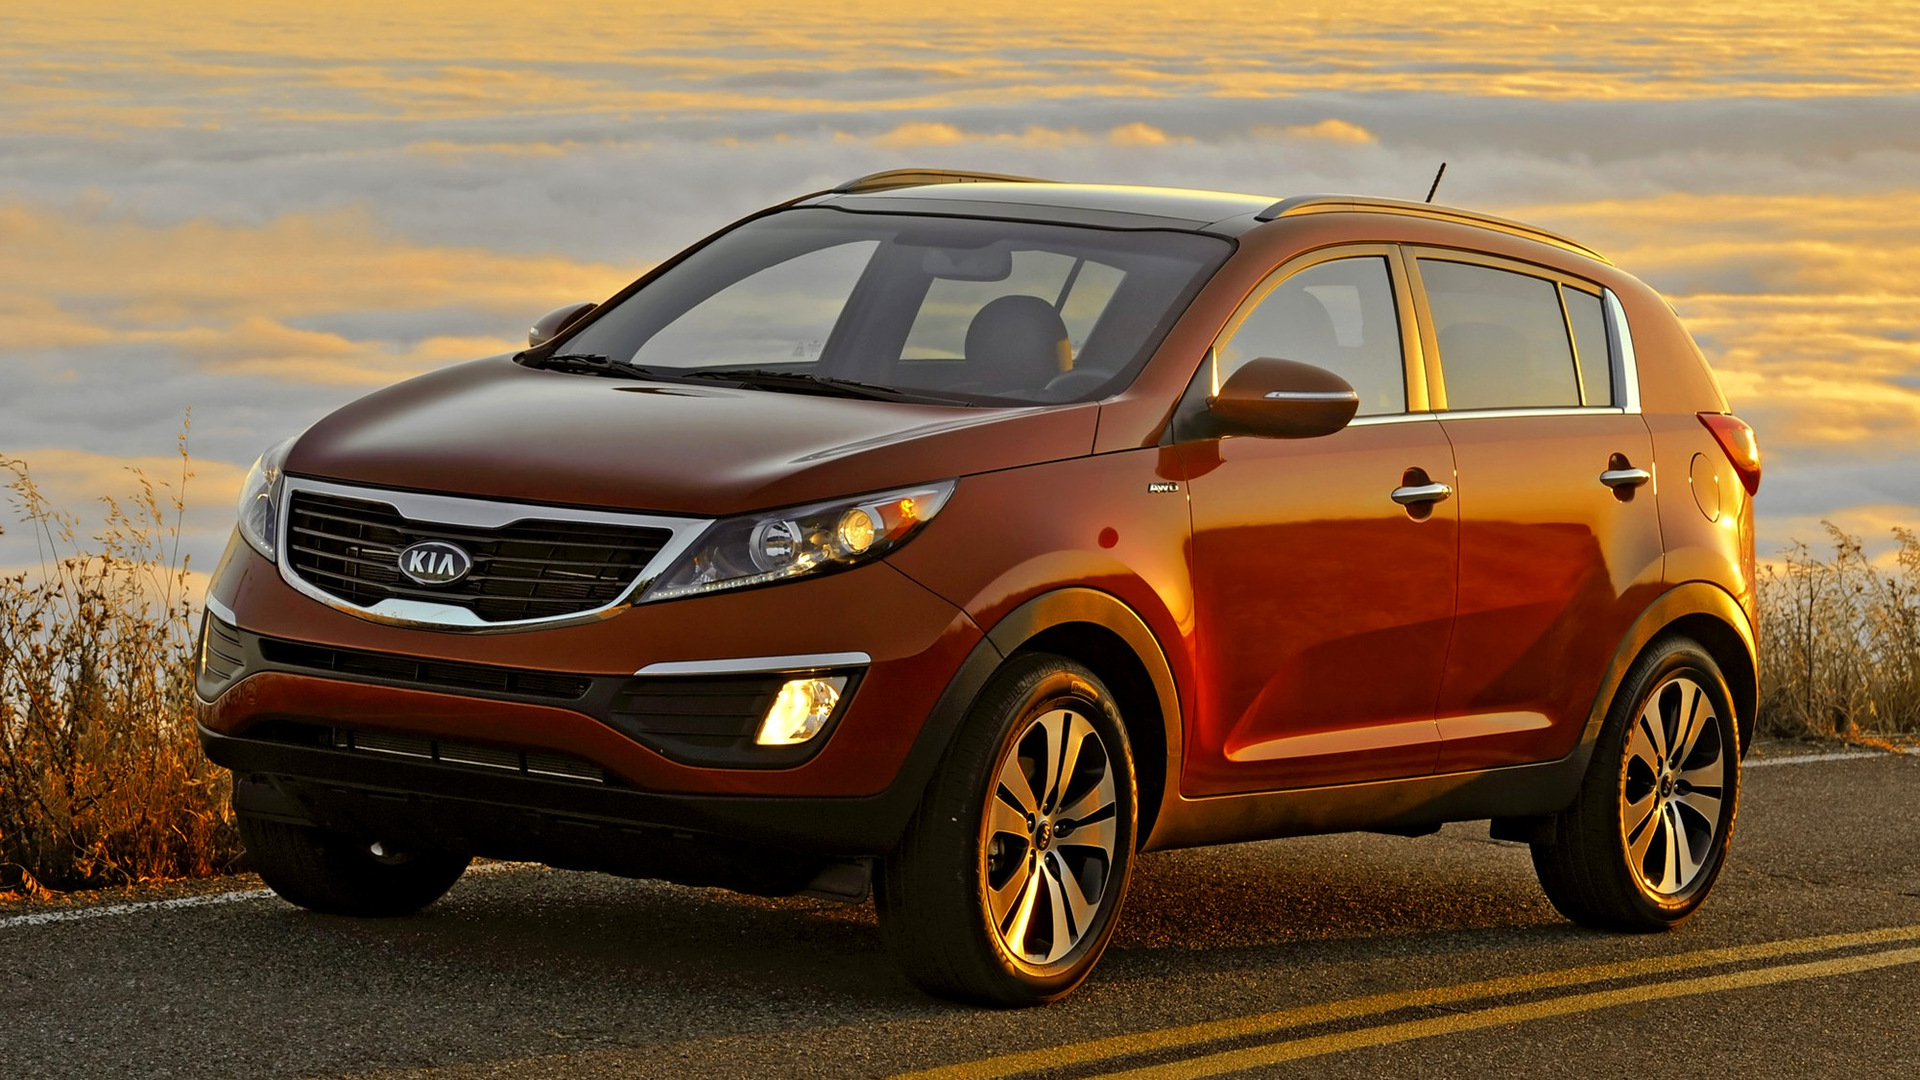 2010 kia sportage us wallpapers and hd images car pixel. Black Bedroom Furniture Sets. Home Design Ideas